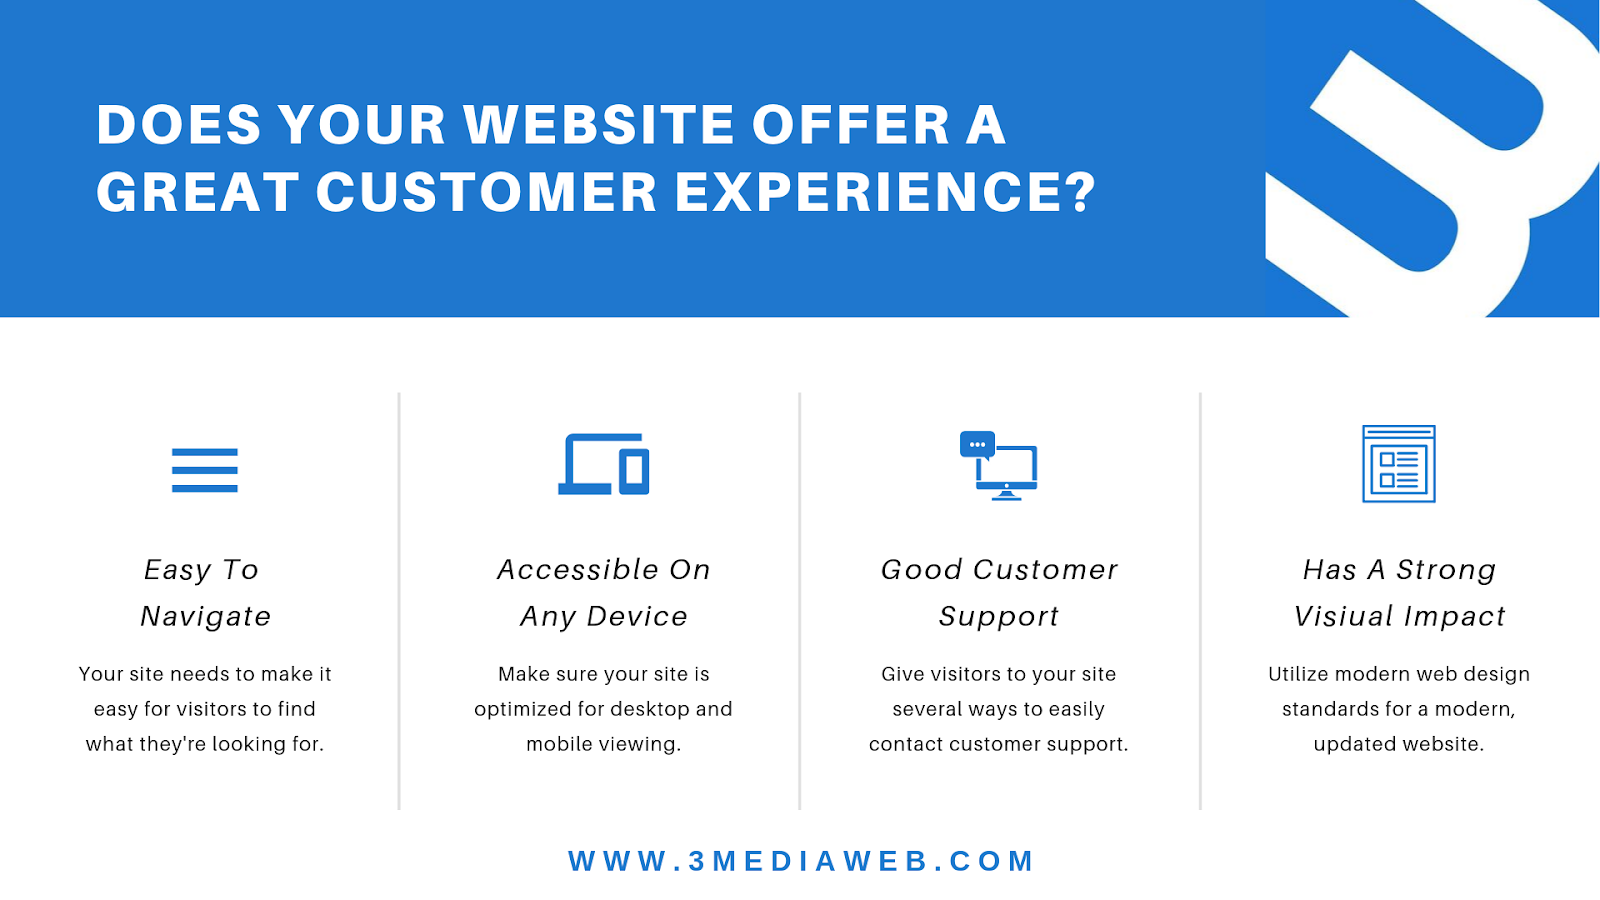 web design standards that provide customer experience are easy to navigate, accessible on any device, and provides good customer experience